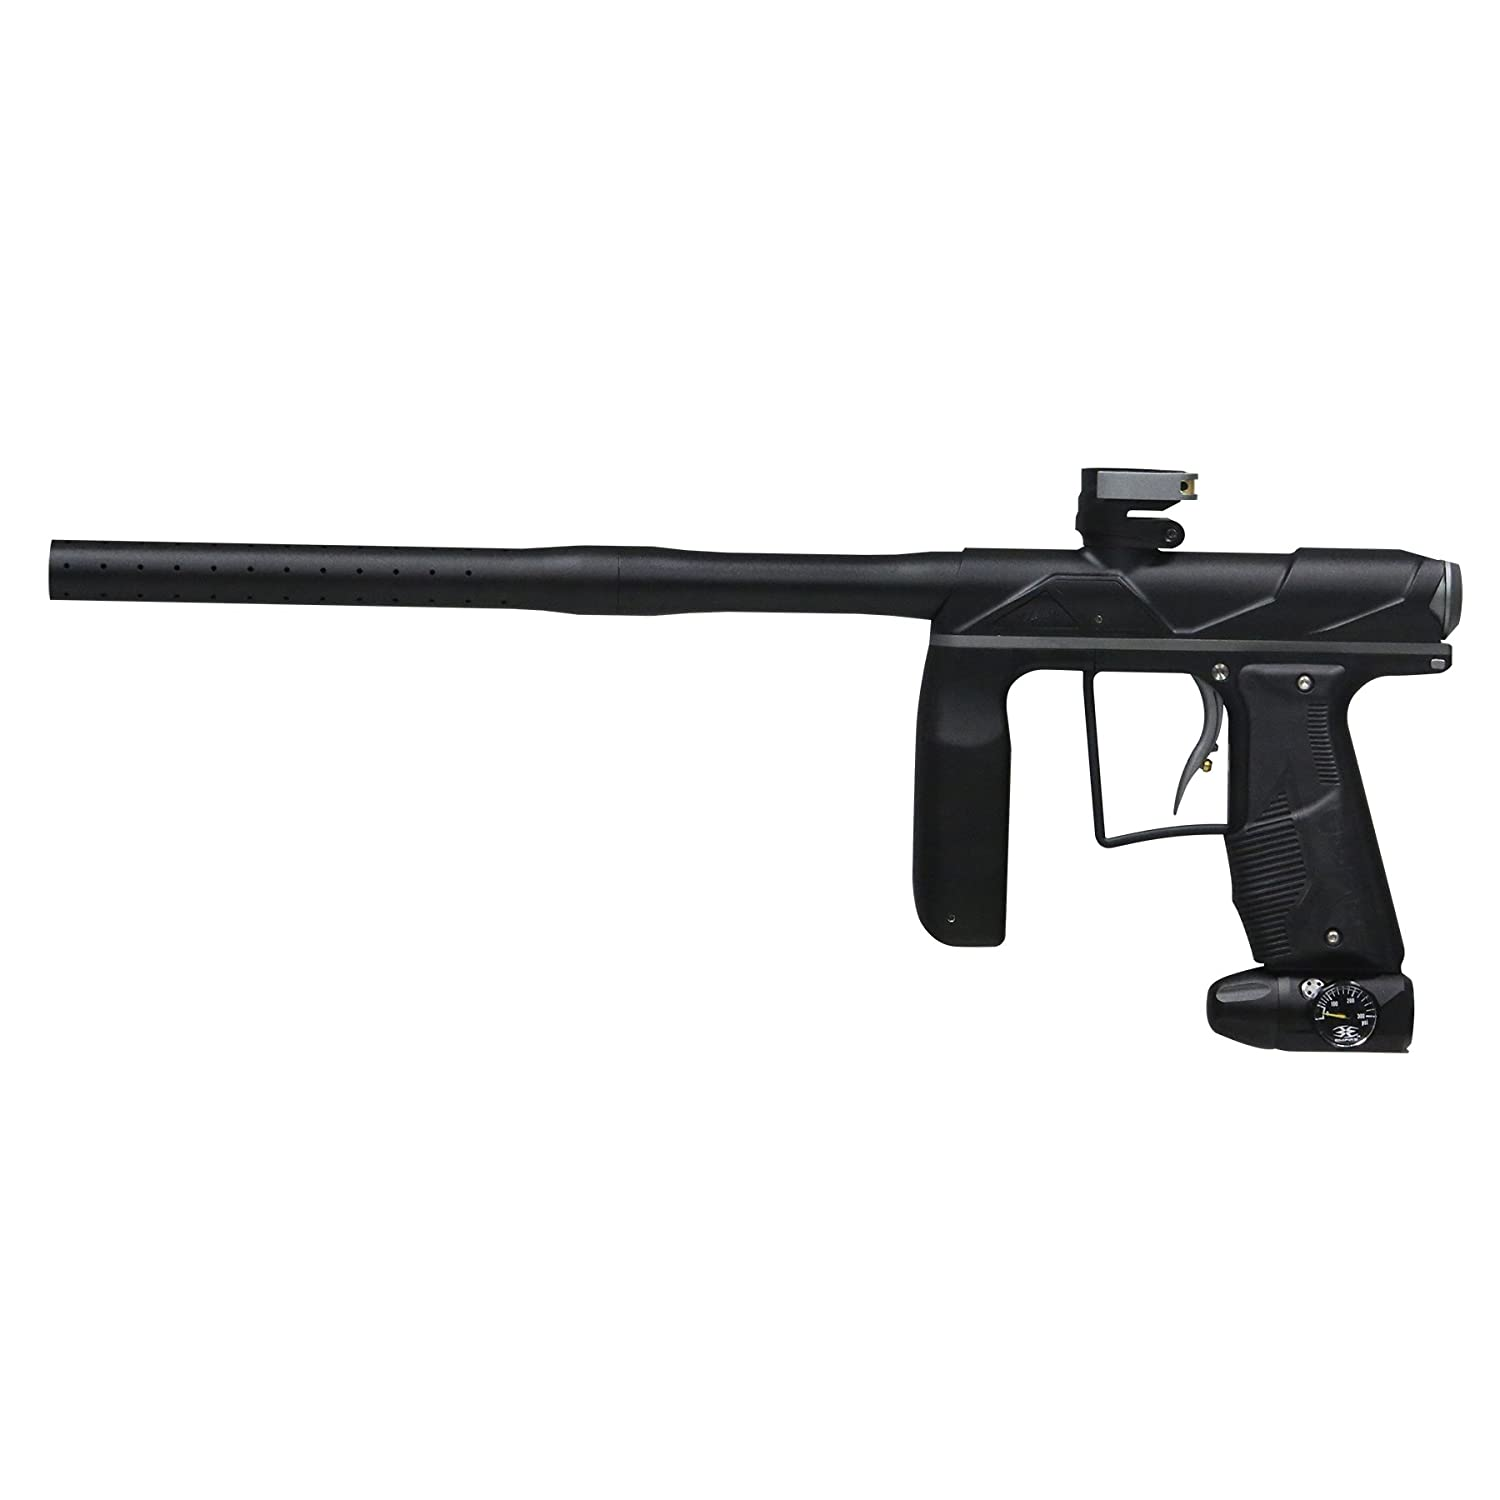 Empire Axe Pro Paintball Gun Review